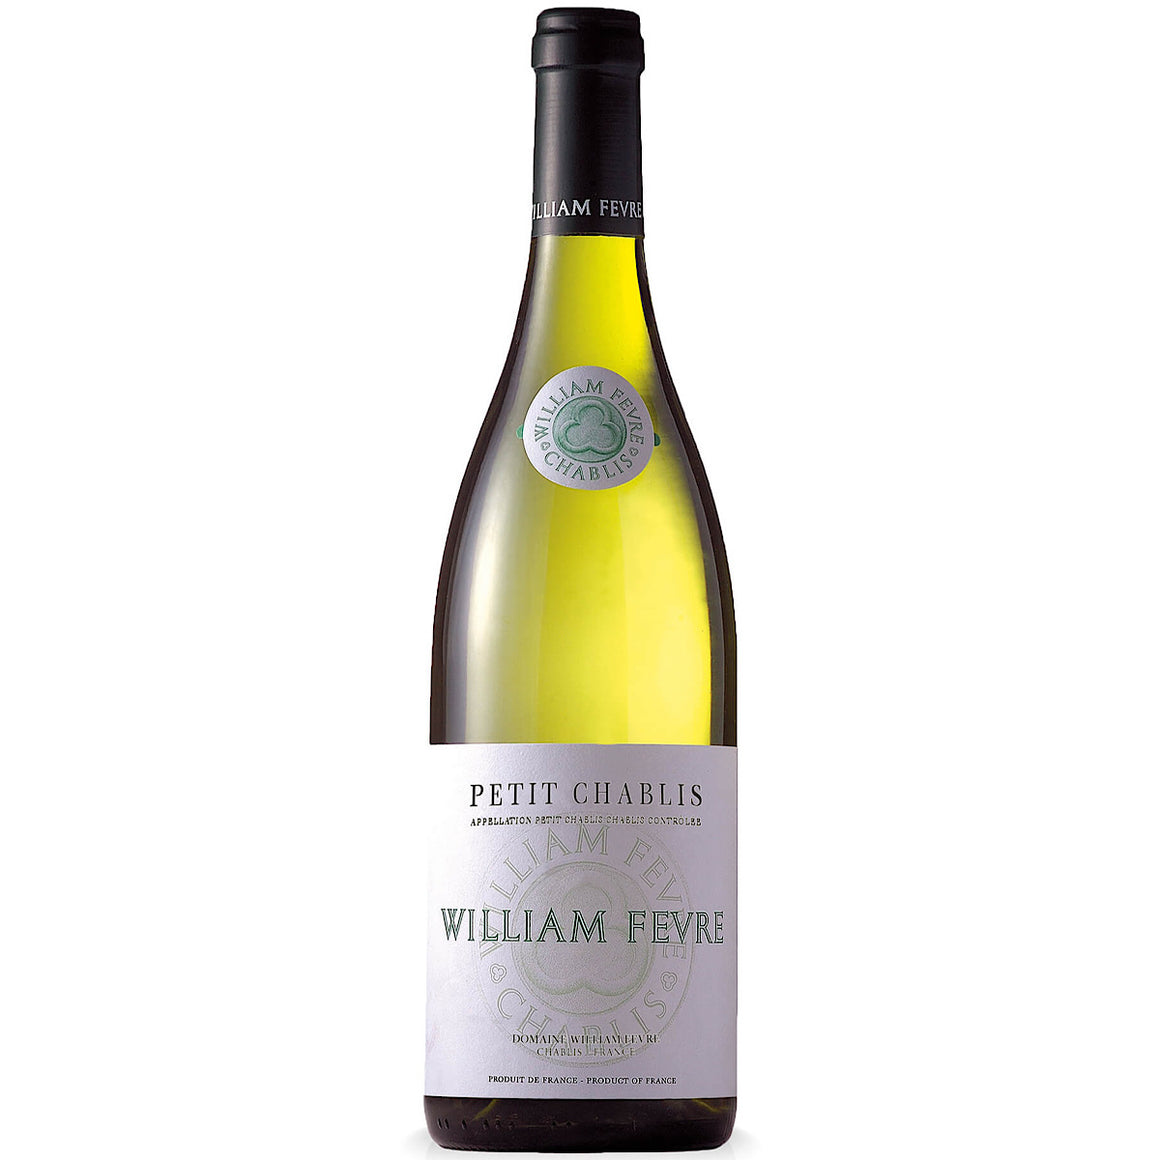 William Fevre Petit Chablis 2017/2018 75cl